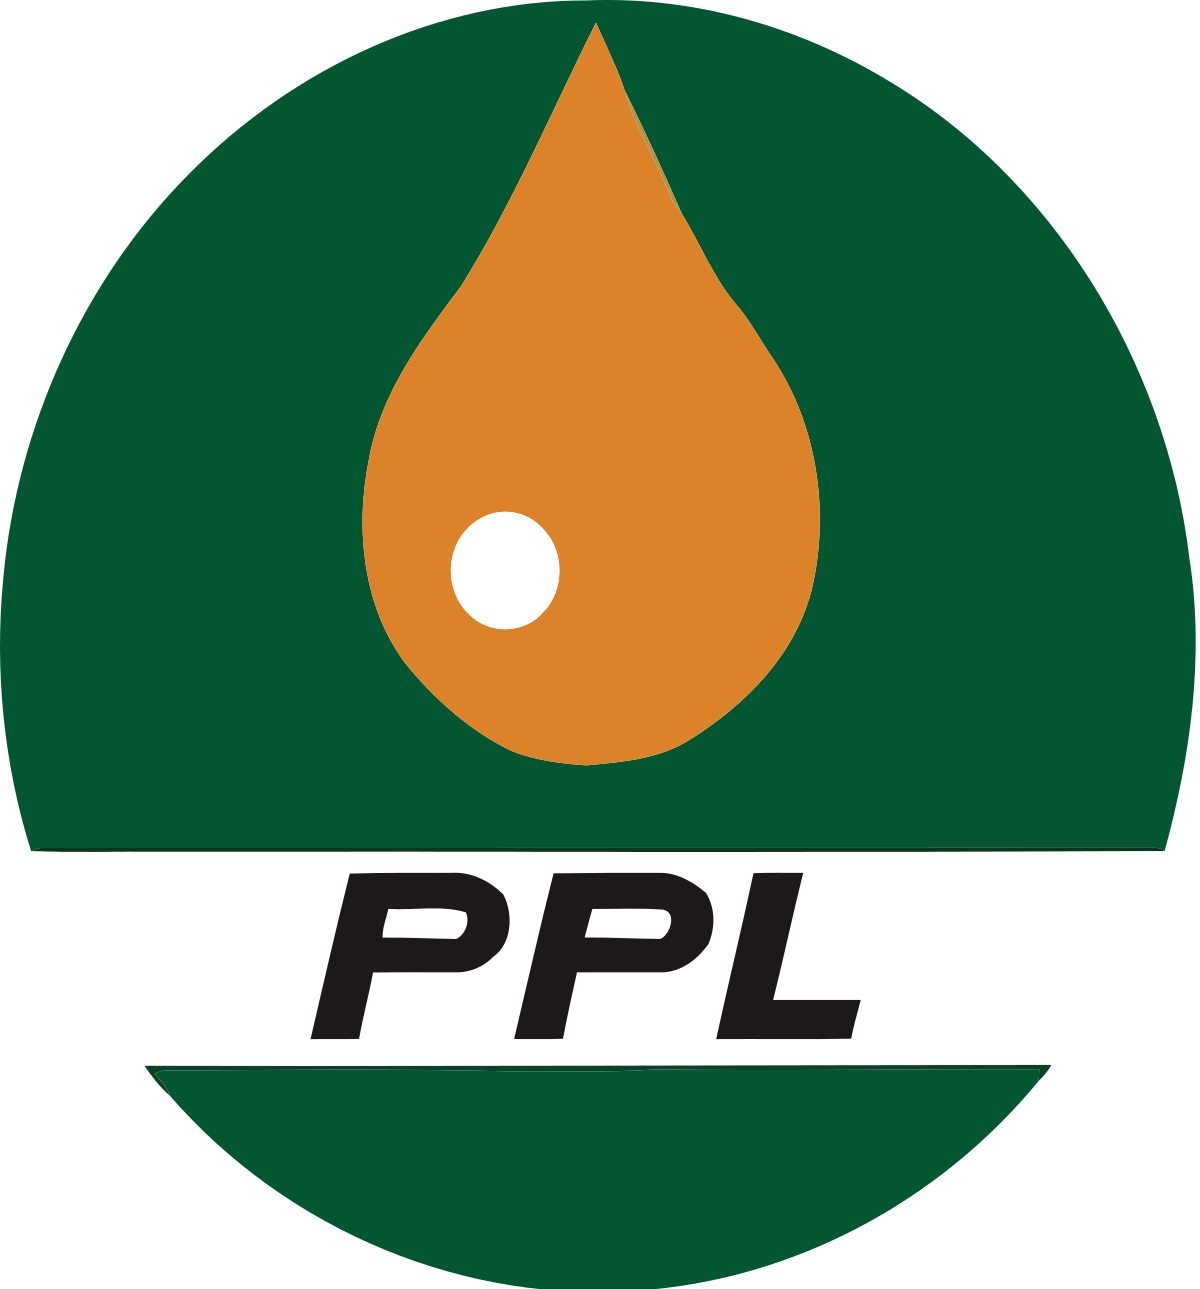 Oil search clipart limited image Pakistan Petroleum - Wikipedia image